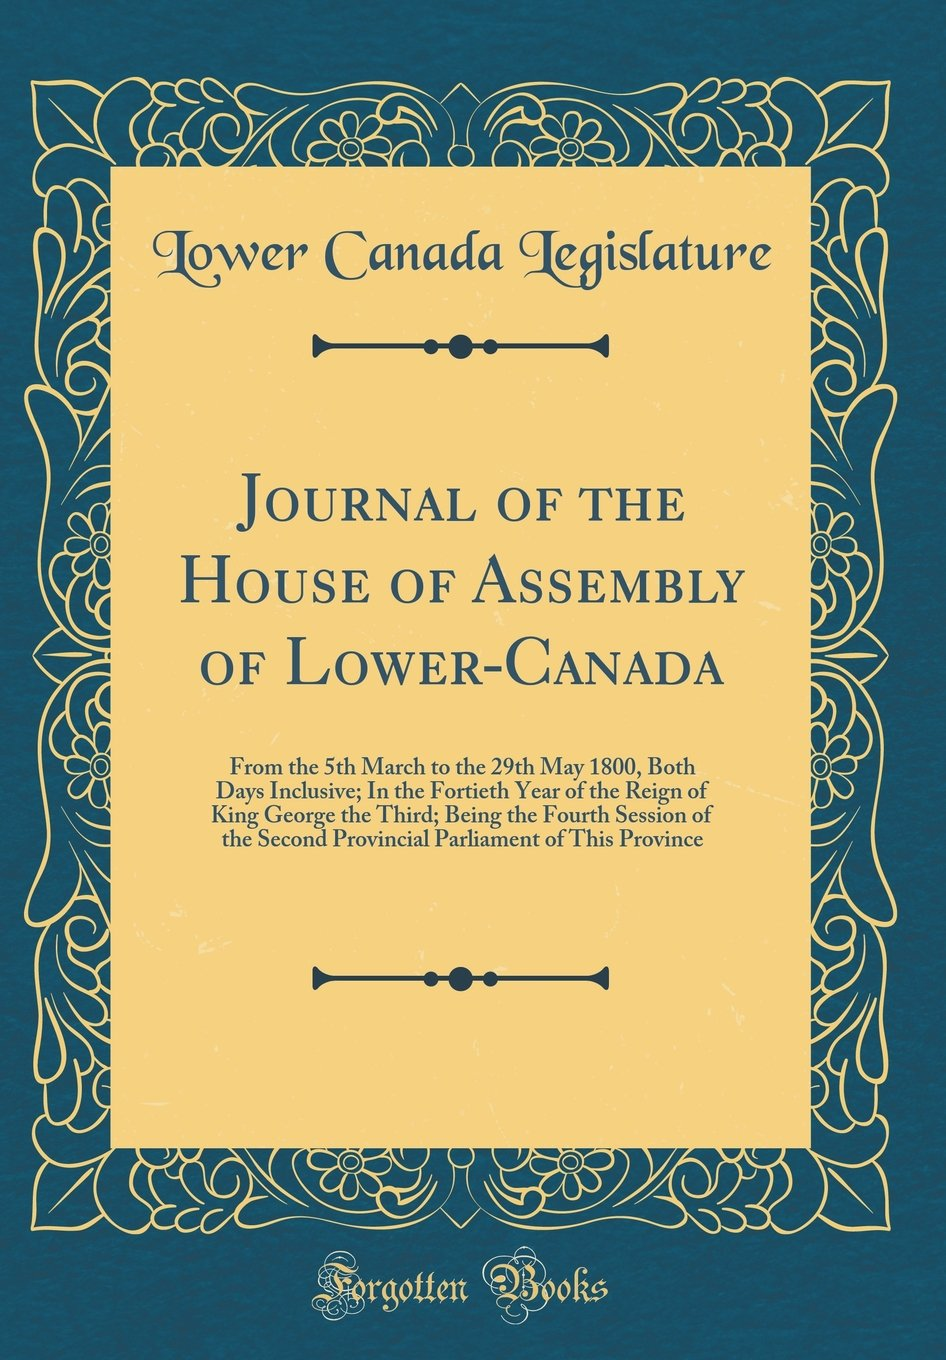 Read Online Journal of the House of Assembly of Lower-Canada: From the 5th March to the 29th May 1800, Both Days Inclusive; In the Fortieth Year of the Reign of ... Second Provincial Parliament of This Province ebook